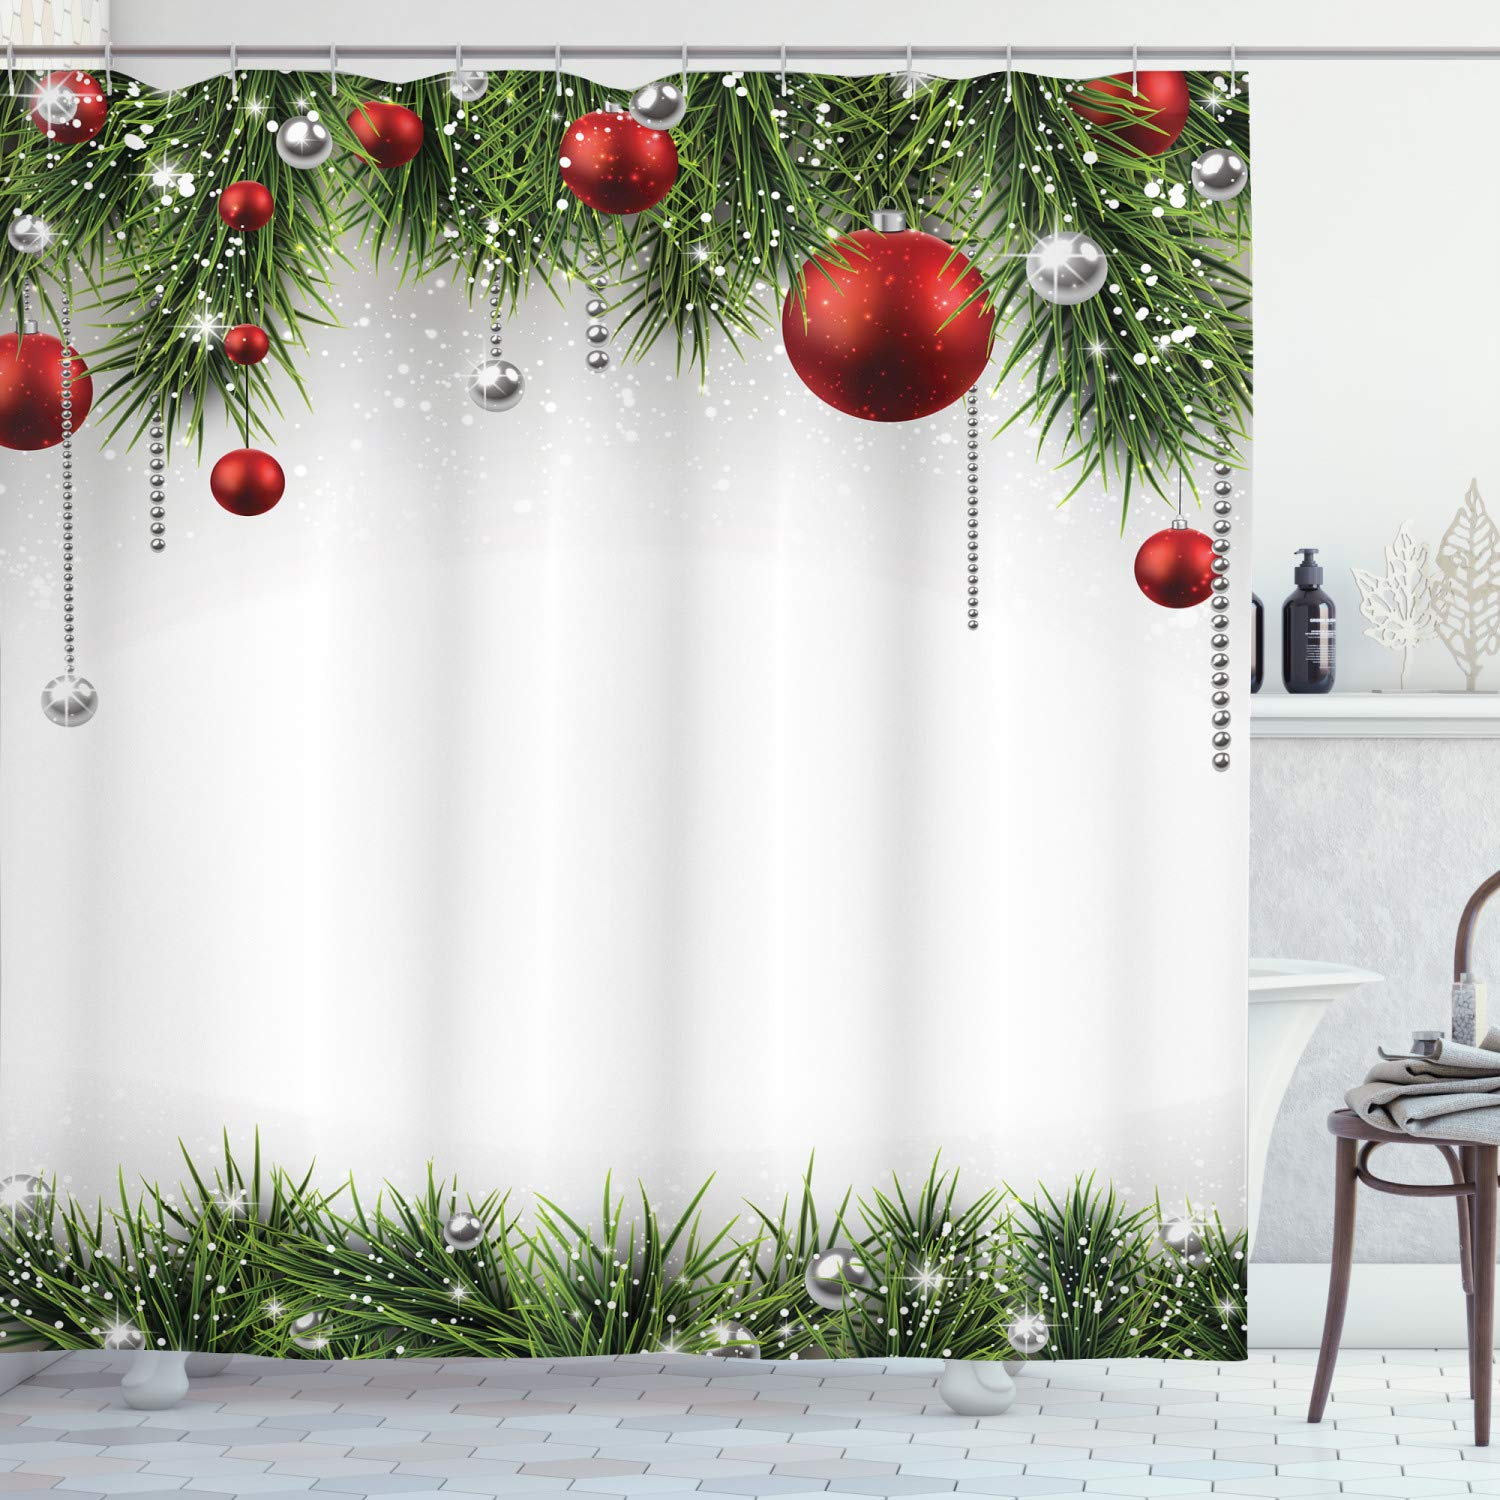 Christmas Shower Curtains Amazon.Ambesonne Christmas Shower Curtain Cloth Fabric Bathroom Decor Set With Hooks Baubles Pine Tree 70 Long